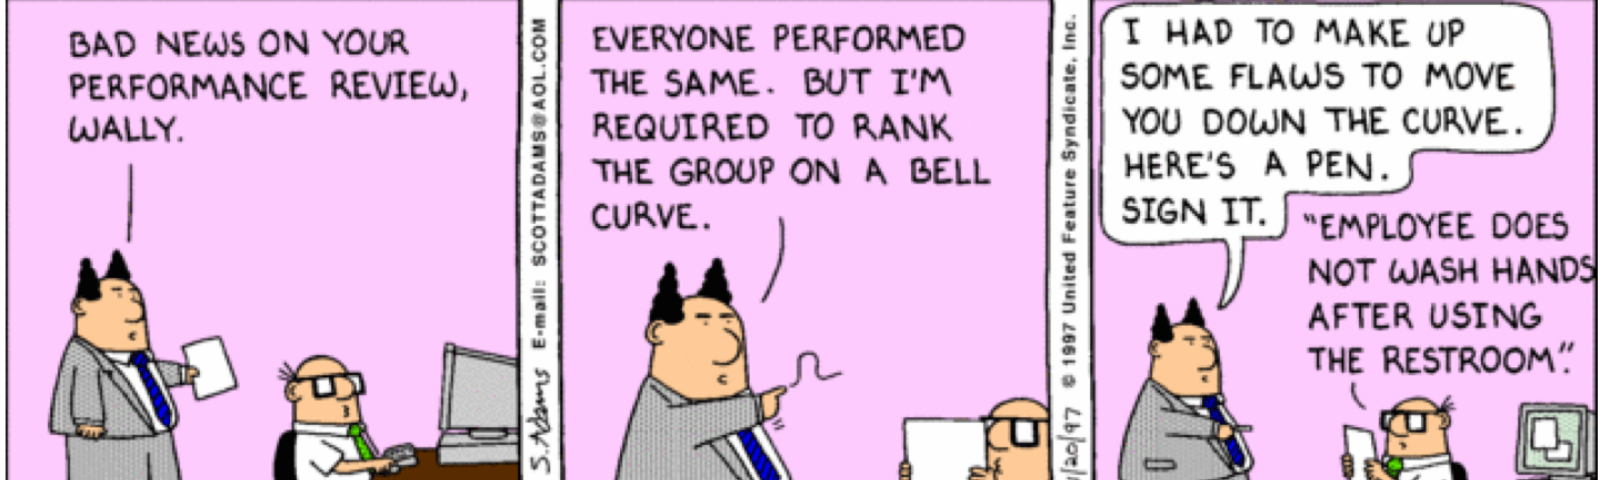 An ambiguous performance review can just leave employees scratching their heads.